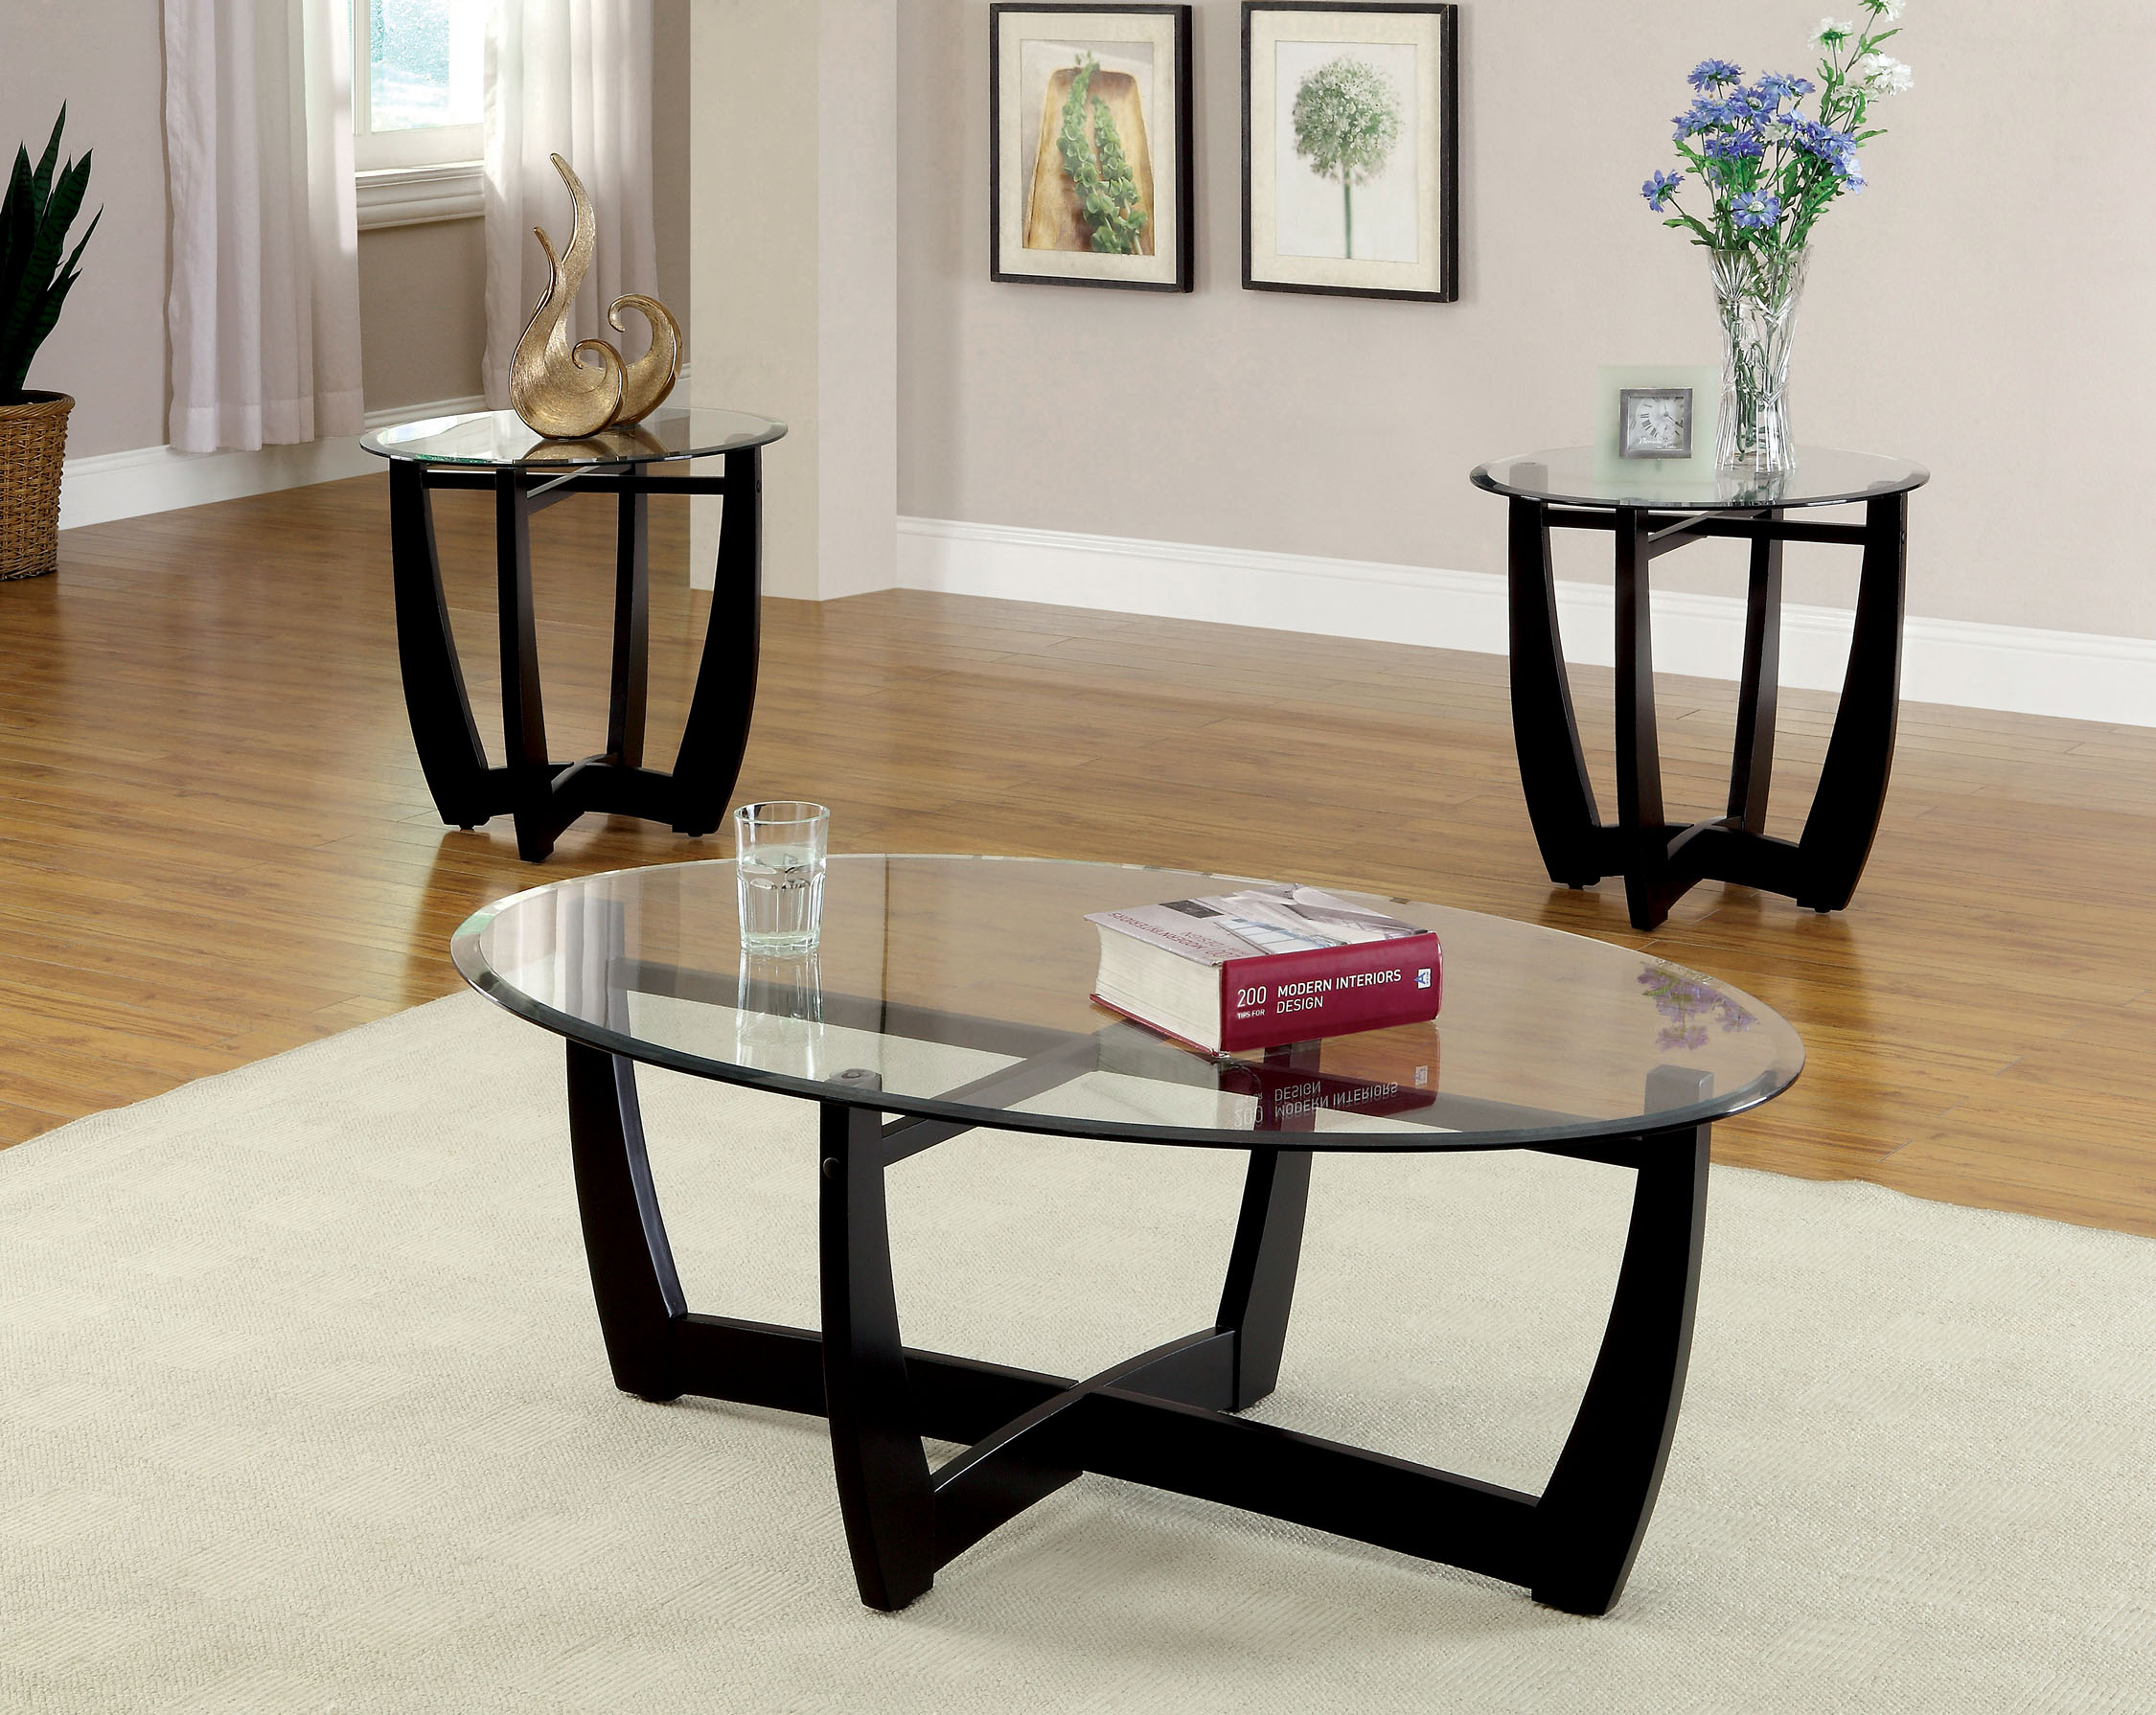 breathtaking coffee table sets glass ideas wallercountyelections create stylish contemporary environment with this unusual three piece accent set the eccentric angular legs